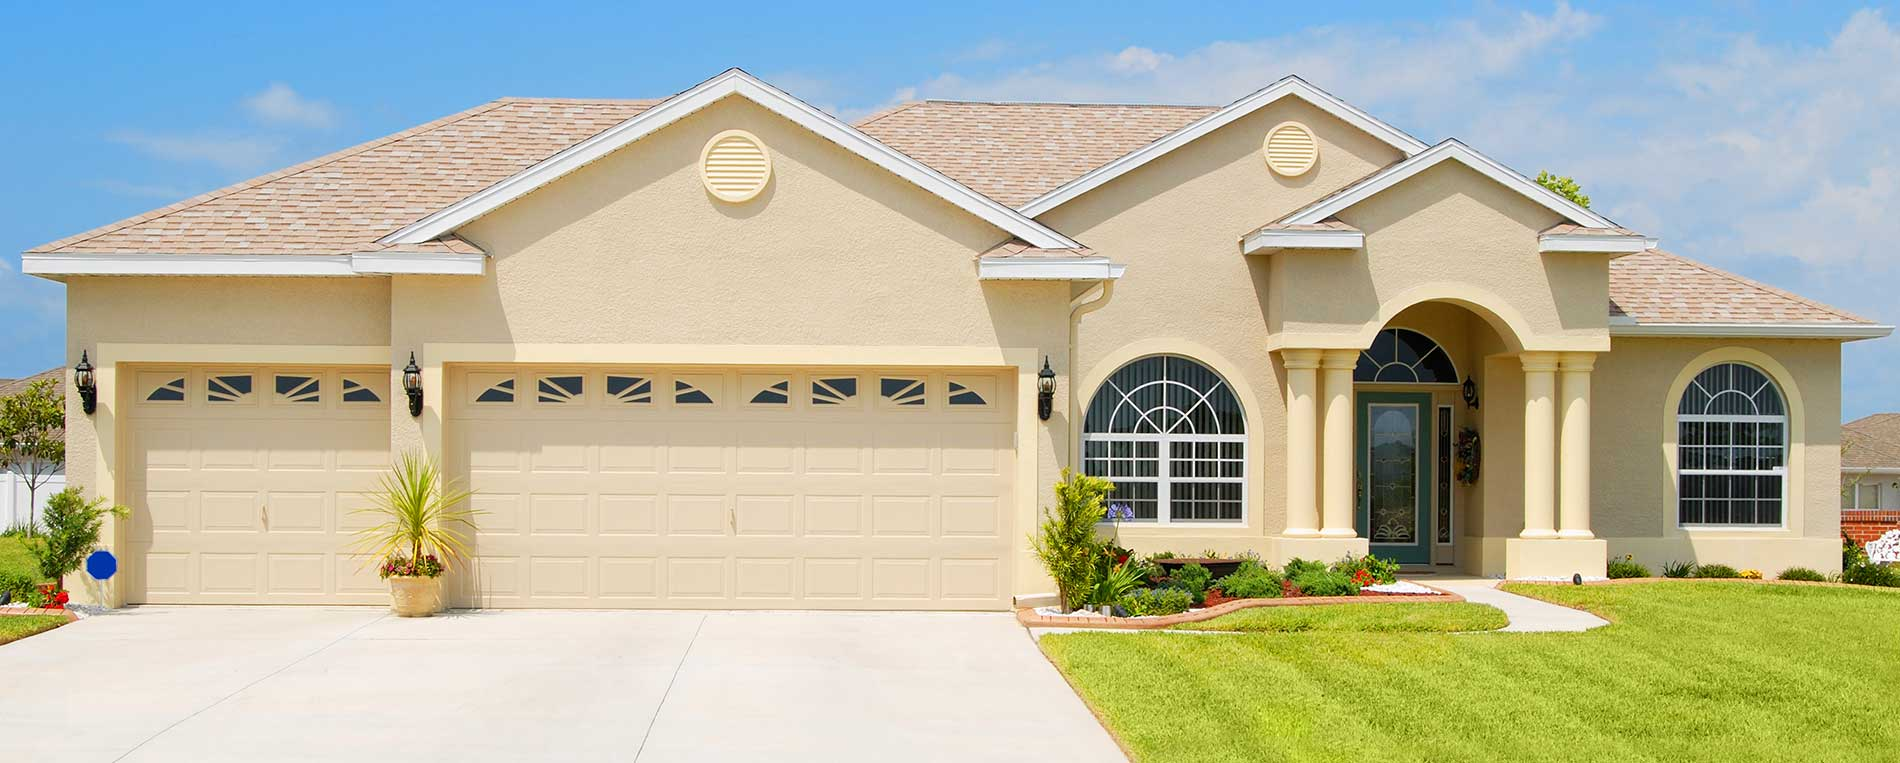 Garage Door Repair Experts In Dallas TX